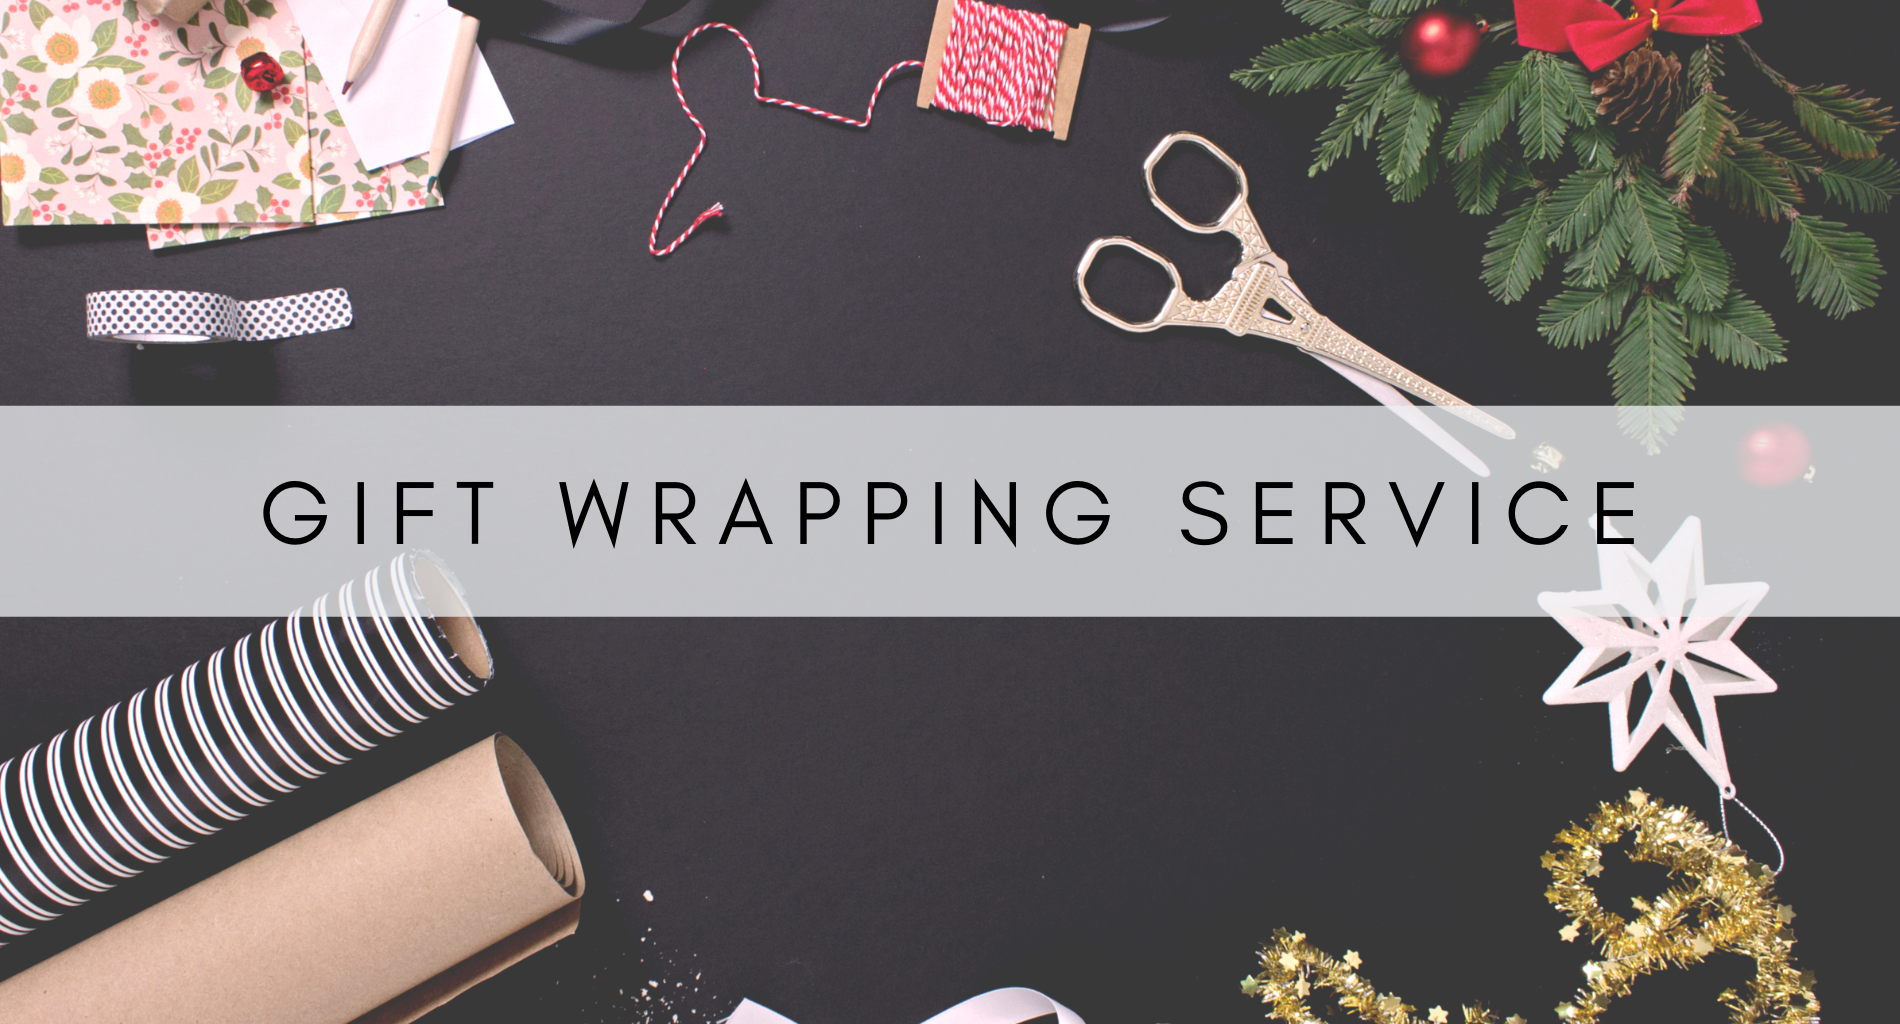 Nifty S Mobile Gift Wrapping Service Nifty Package Co Gift Wrapping Services Mobile Gifts Gift Wrapping